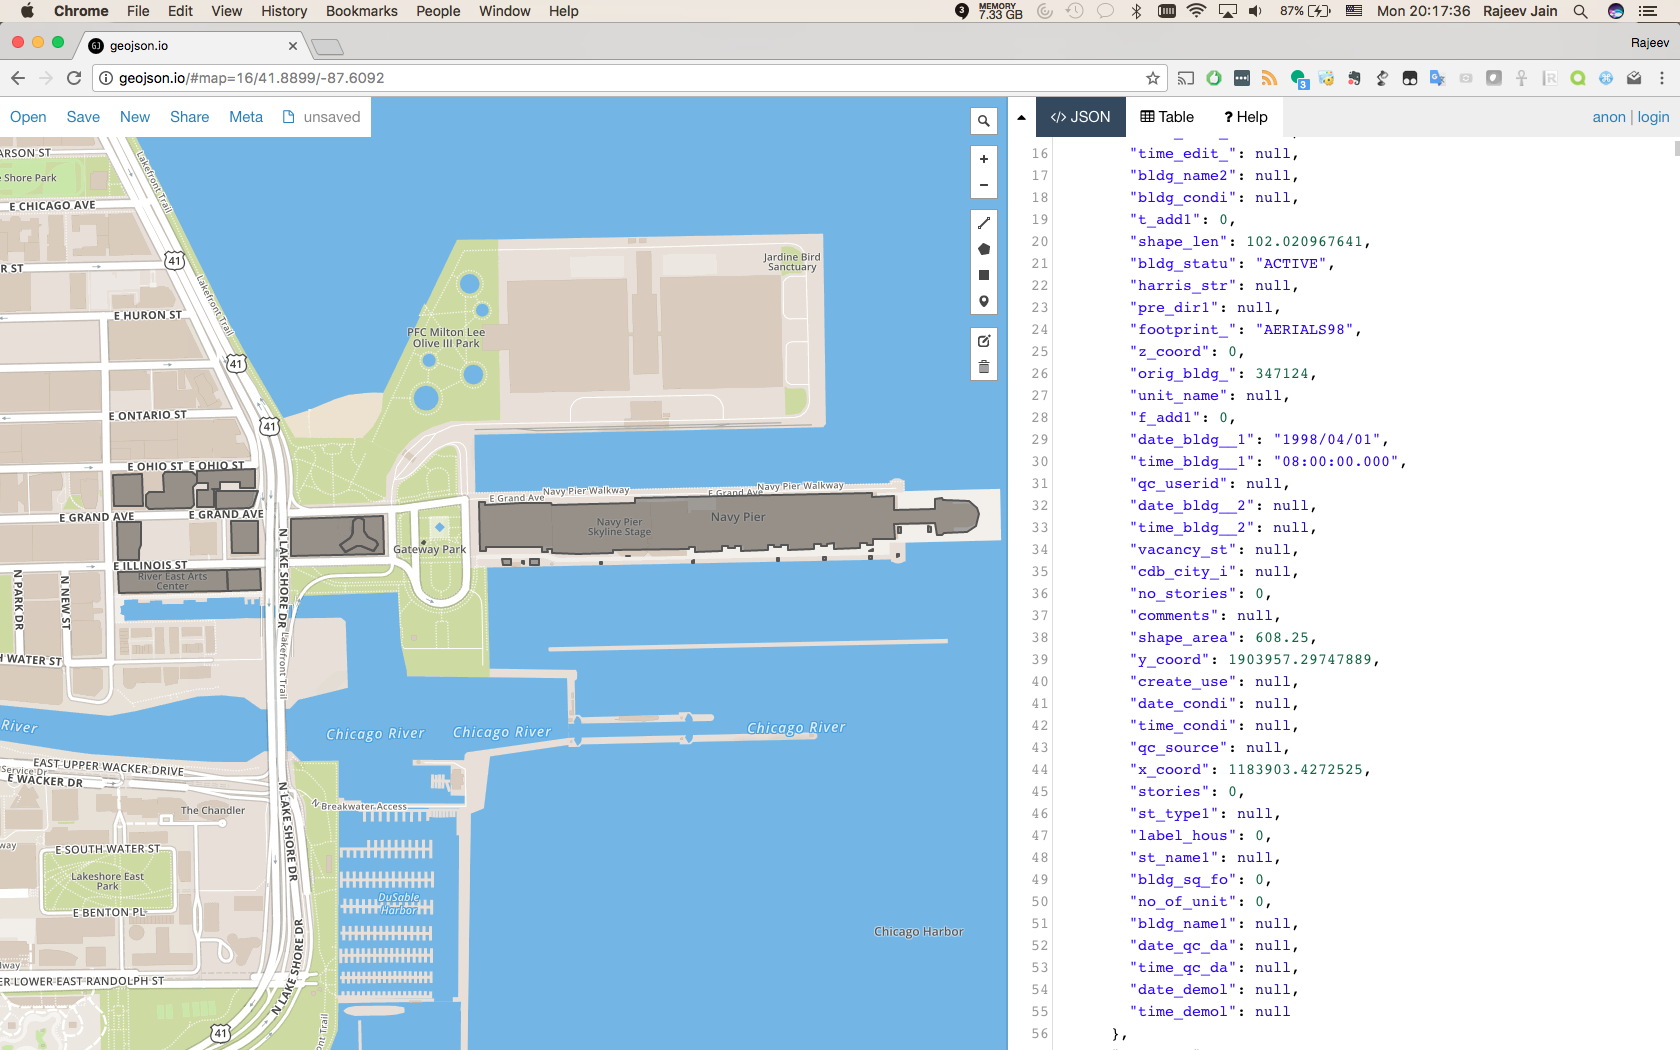 Website: http://geojson.io/ can be used to visualize the original input to tool. The geojson or building shape is used to model the building footprints of Navy Pier and closeby buildings.